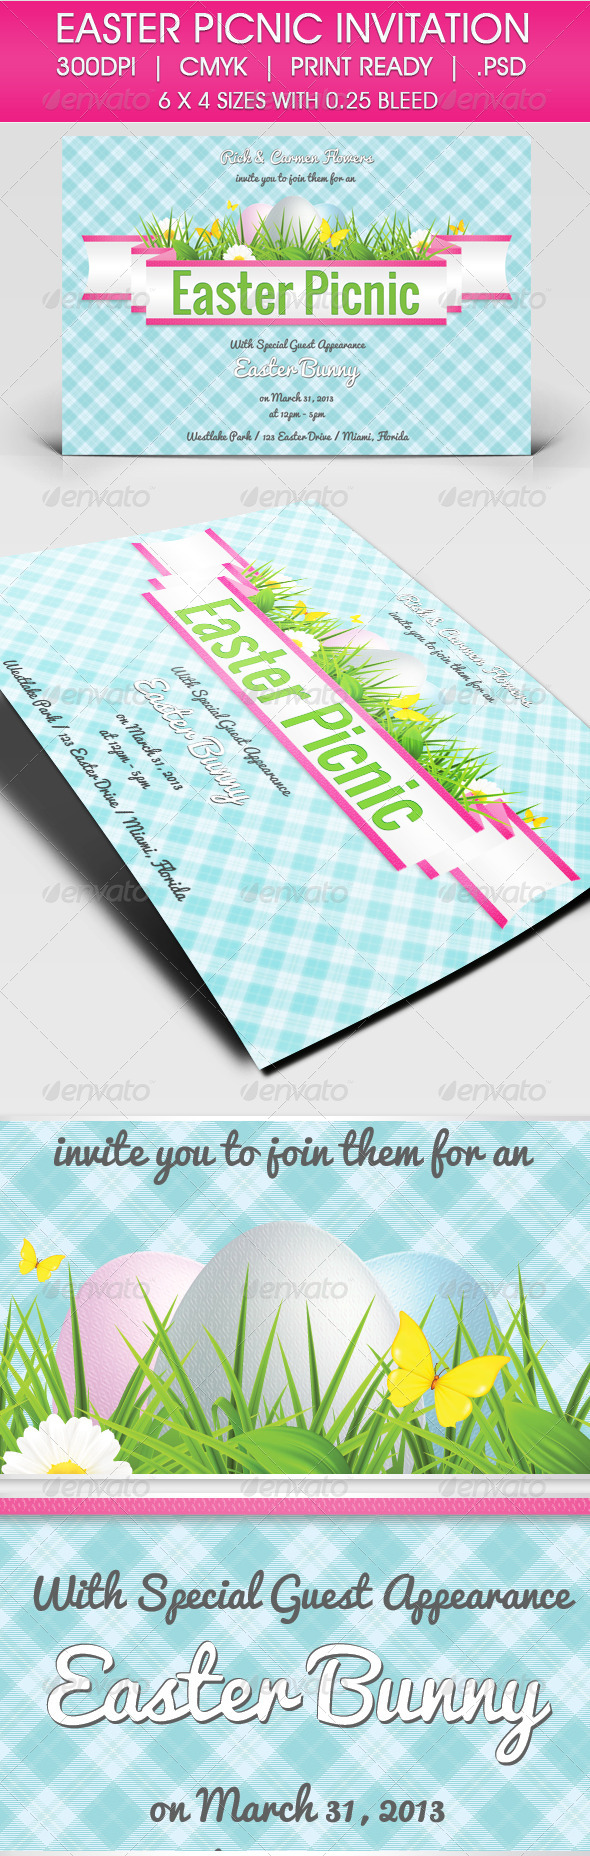 GraphicRiver Easter Picnic Invitation 4148377